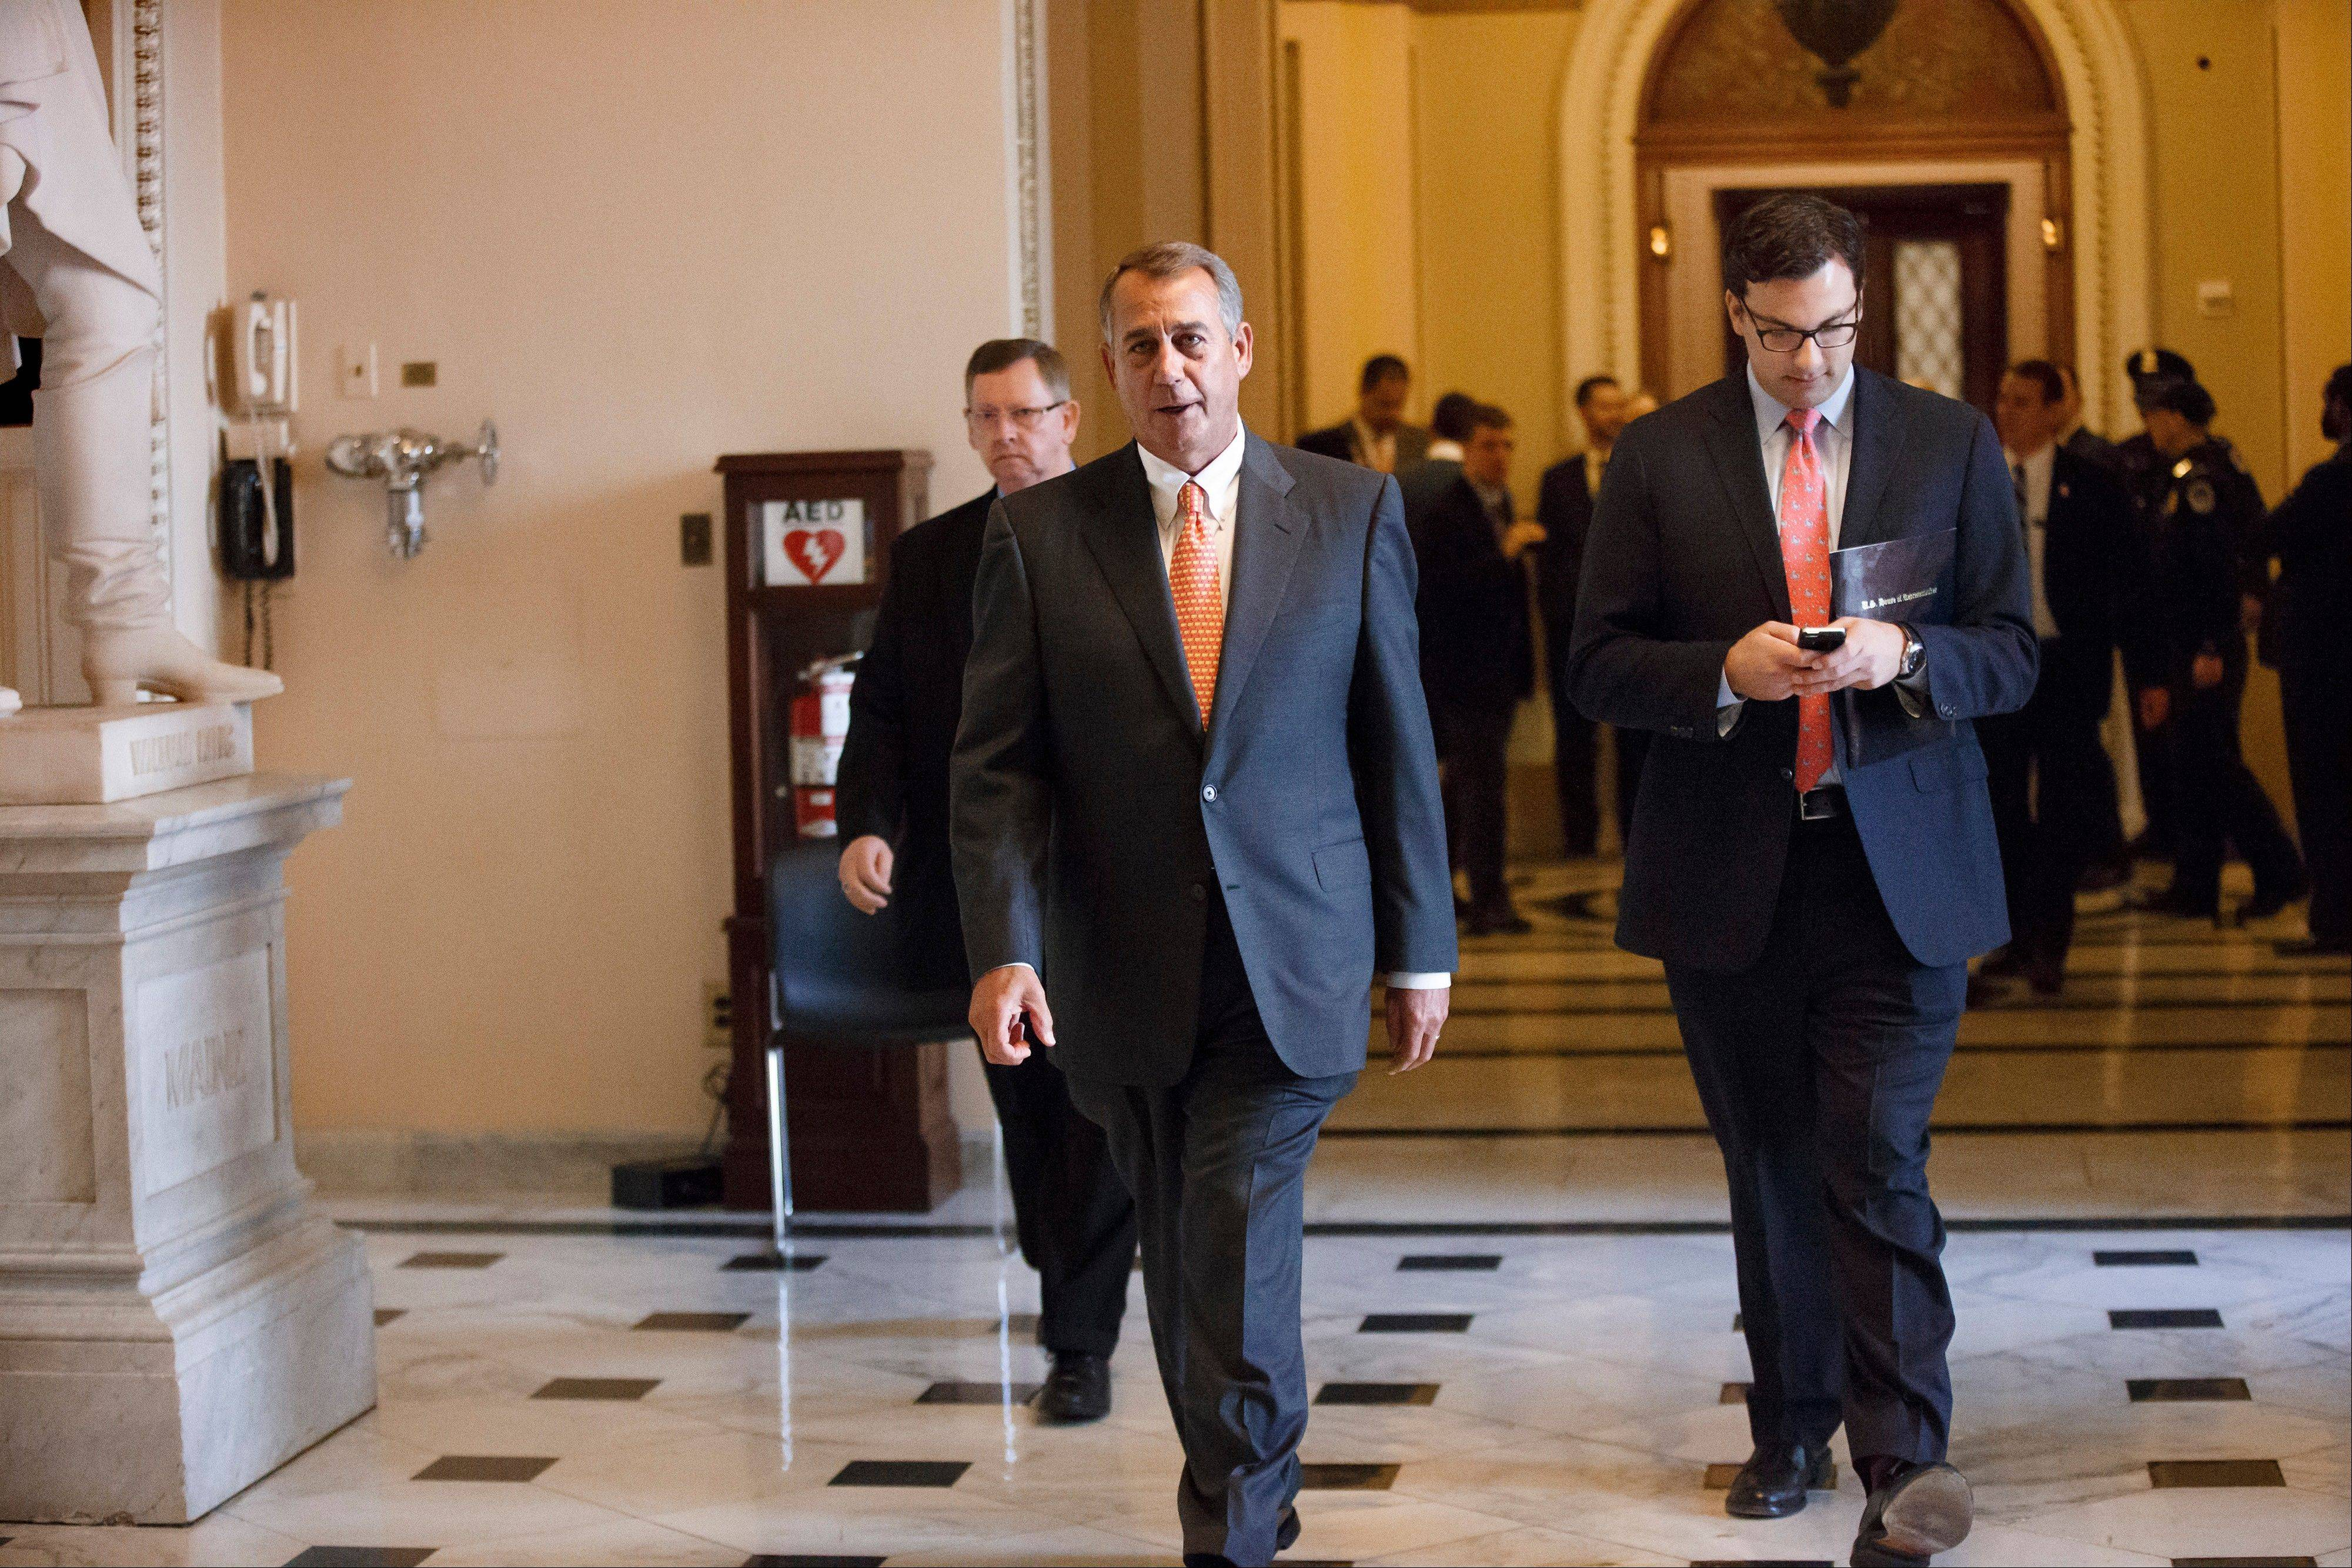 House Speaker John Boehner leaves the House chamber on Capitol Hill Wednesday after the final vote on a massive $1.1 trillion spending bill. The measure sailed through the House with no suspense and little dissent � fueled additionally by lawmakers� desire to avoid an election-year replay of last fall�s widely unpopular 16-day federal shutdown.